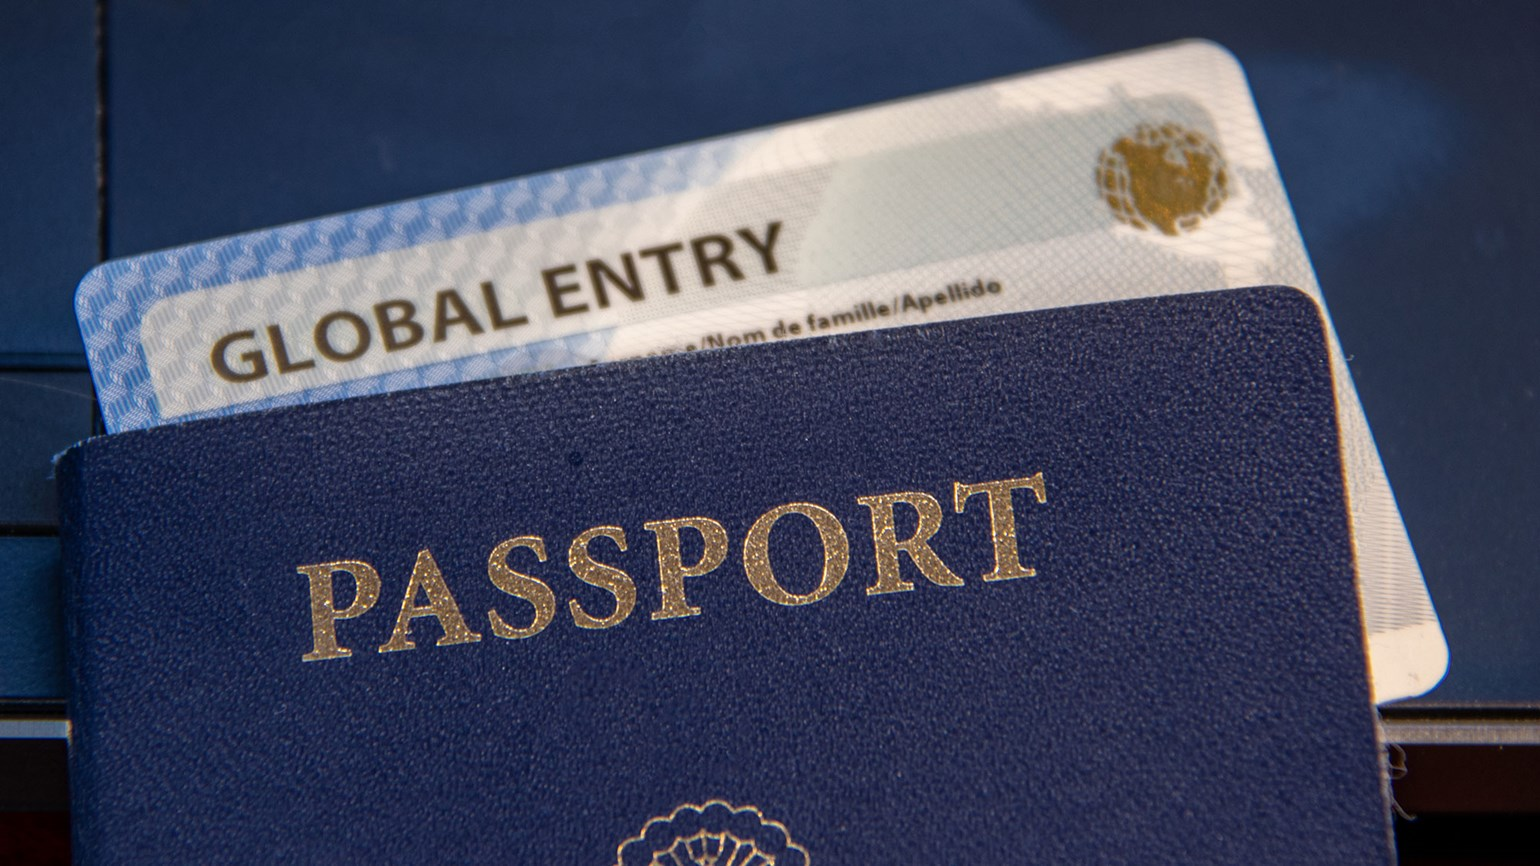 Democrats intensify political battle over Global Entry ban in N.Y.